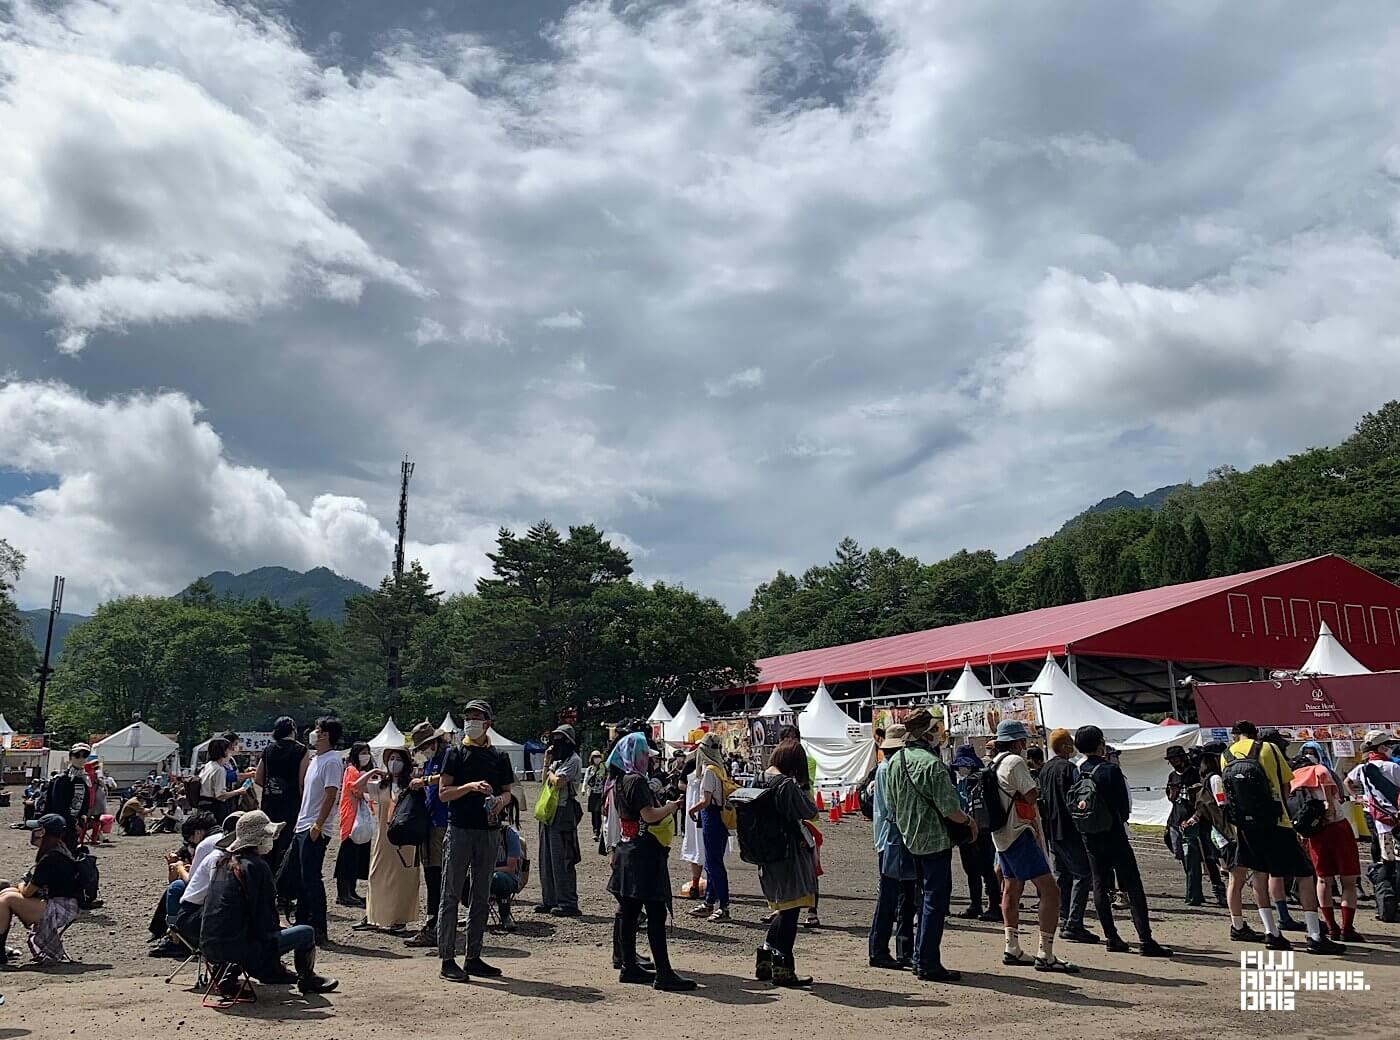 The Weather Report for Your Last Chance to (Fuji) Rock in 2021!